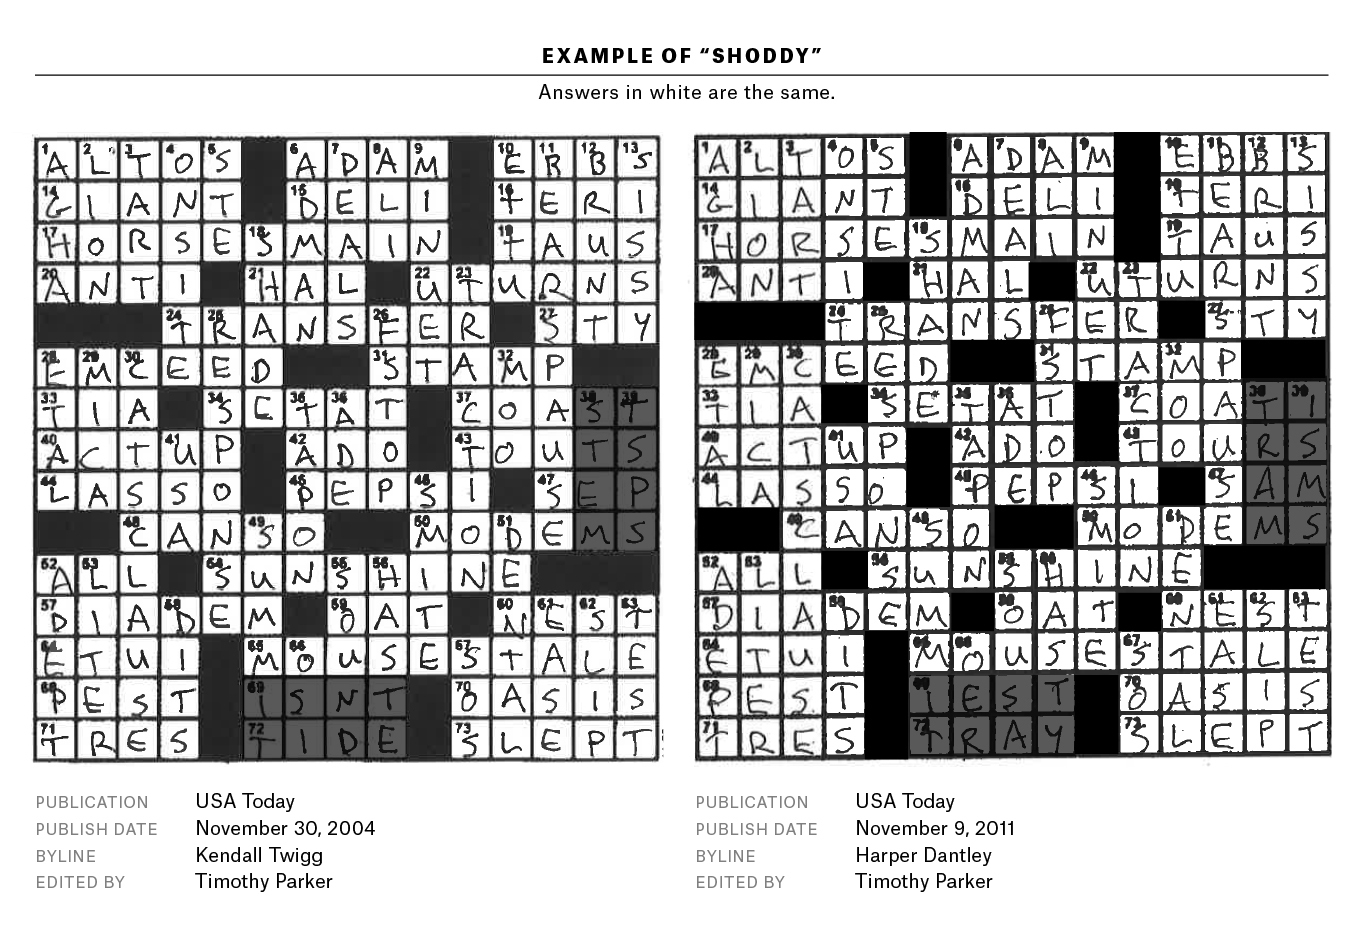 A Plagiarism Scandal Is Unfolding In The Crossword World - Printable Crossword Toronto Star